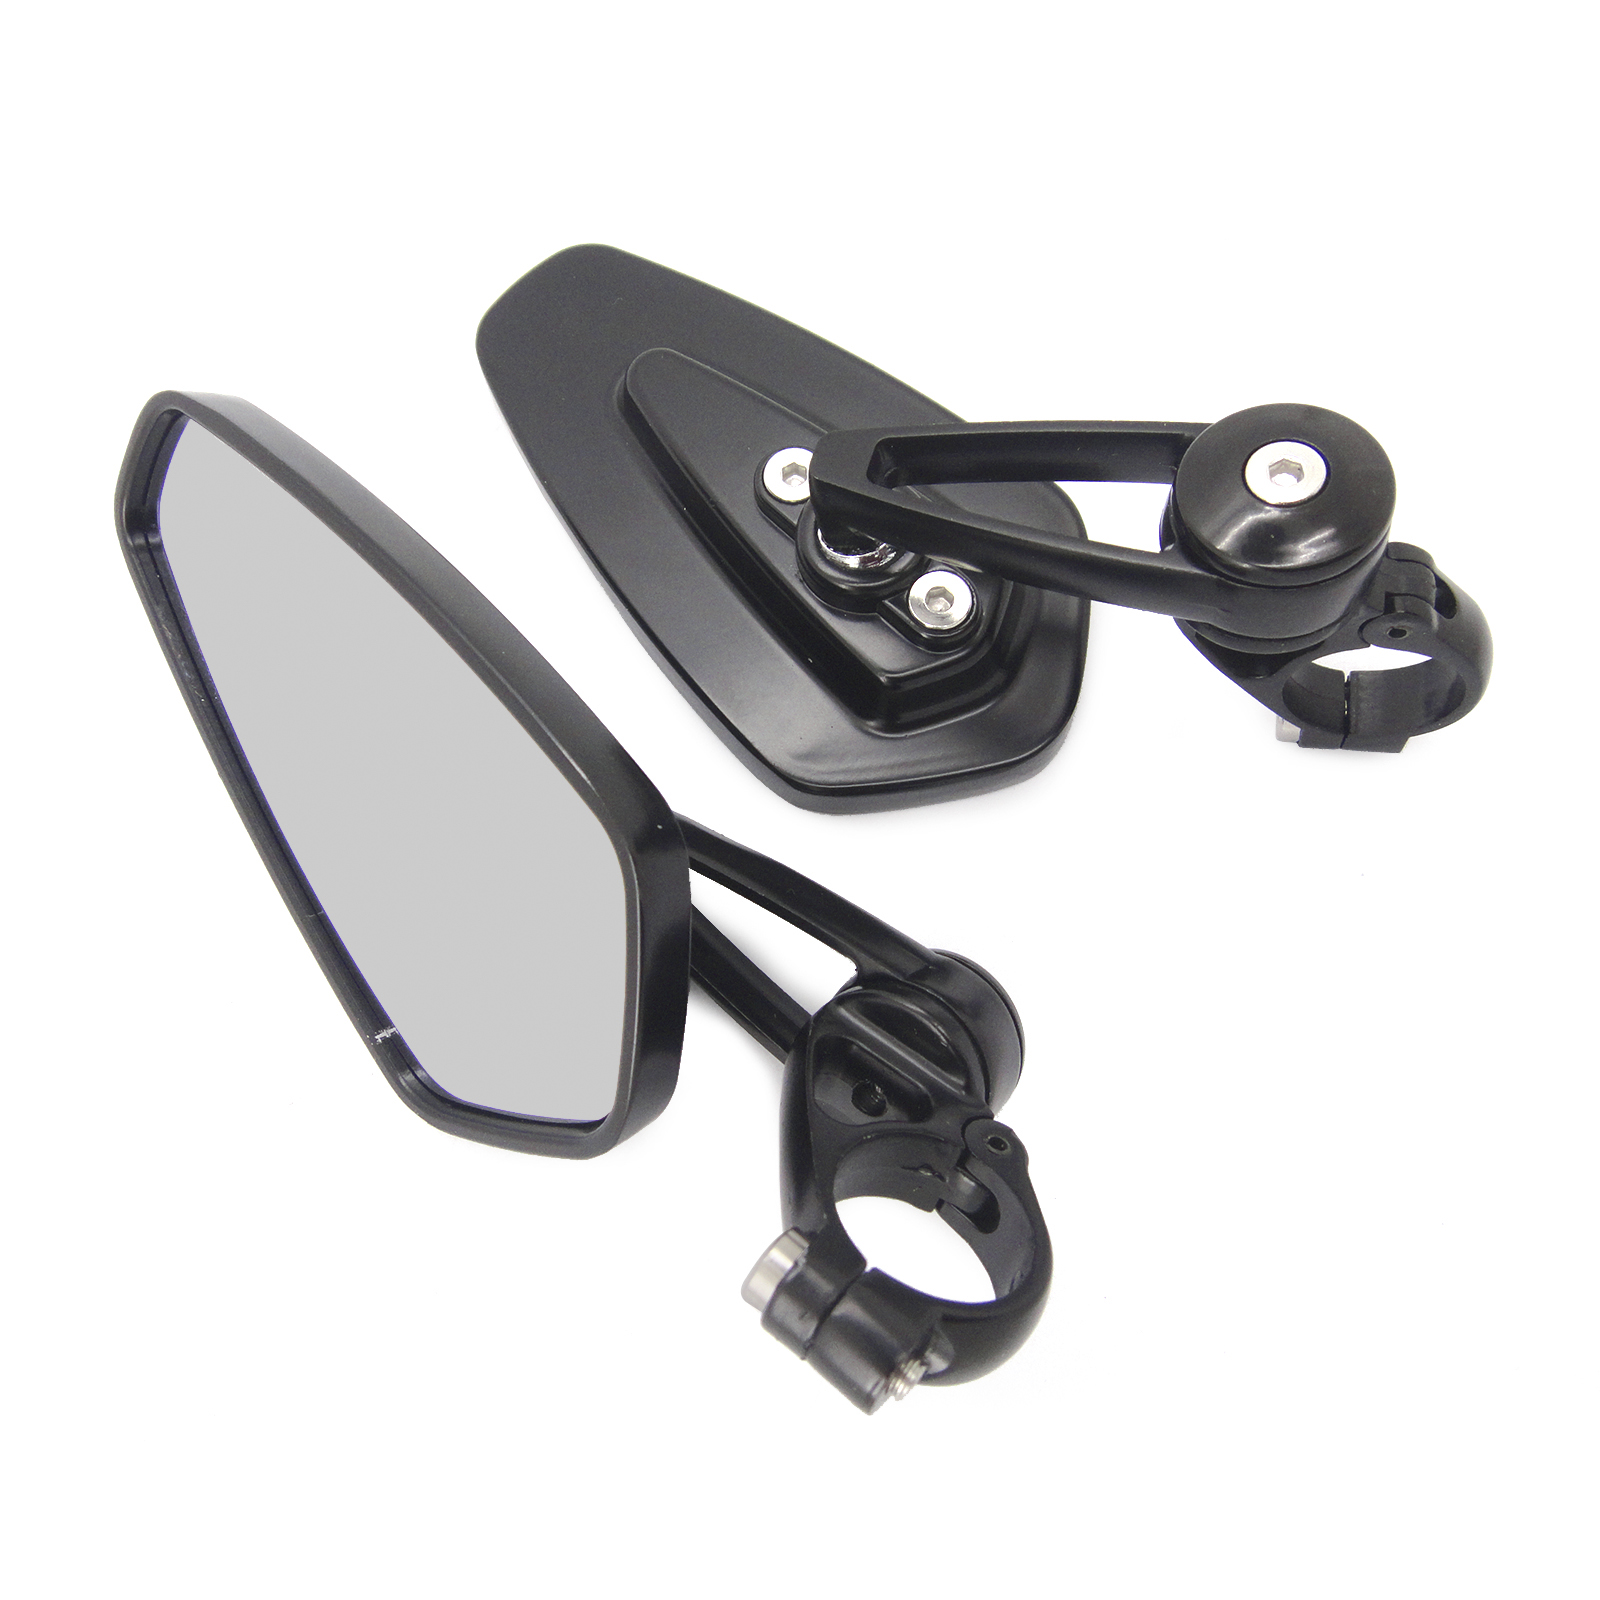 Universal Motorcycle Moto 7/8 22mm Handle Bar End Rearview Side Mirror Motorbike Scooters Rearview Mirror Side View Cafe Racer projector lamp lmp e190 for sony vpl es5 vpl ex5 vpl ew5 vpl ex50 with housing top 200w hscr200y12h